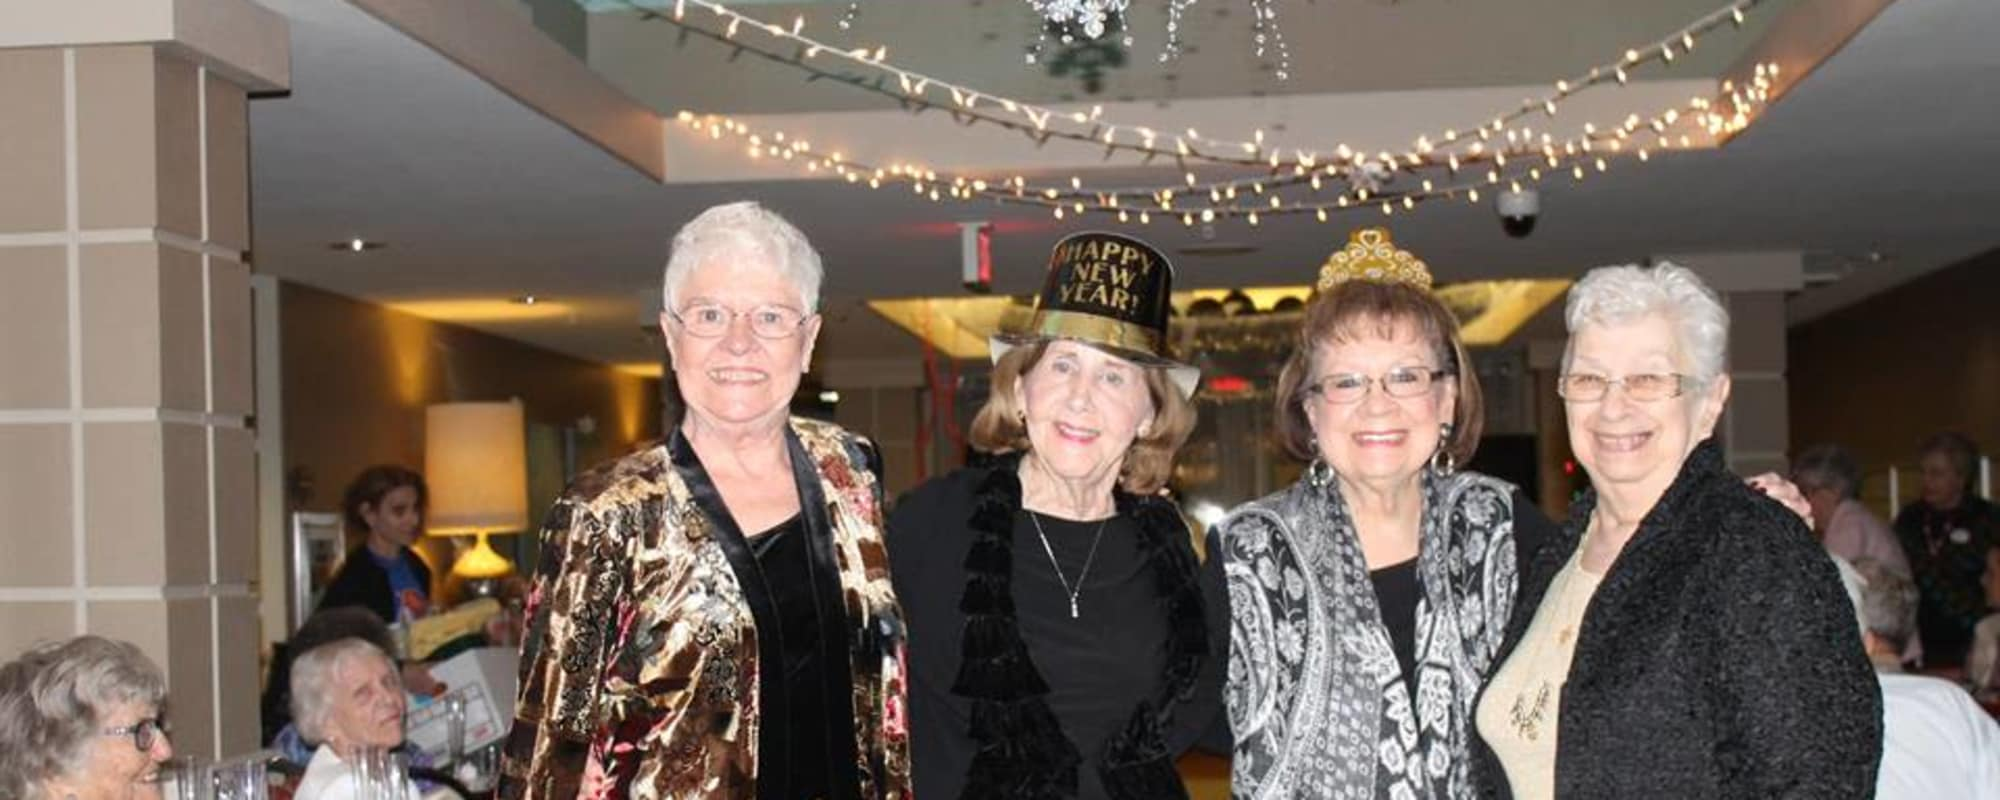 Seniors at New Years Party at McDowell Village in Scottsdale, Arizona